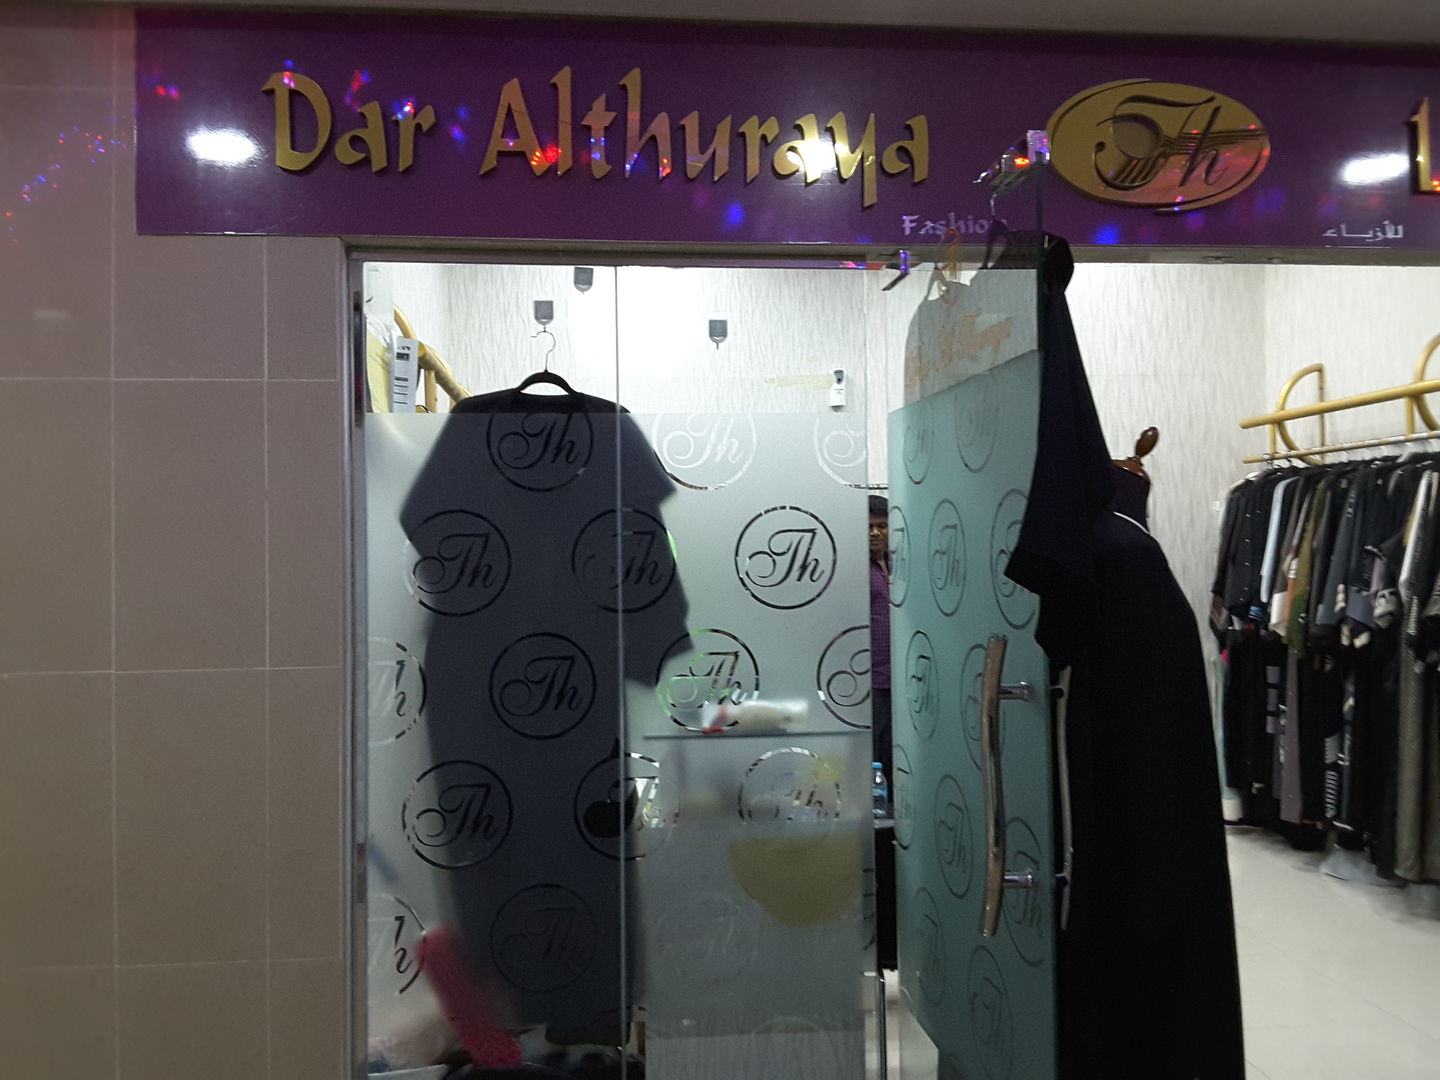 HiDubai-business-dar-al-thuraya-fashion-shopping-apparel-mirdif-dubai-2